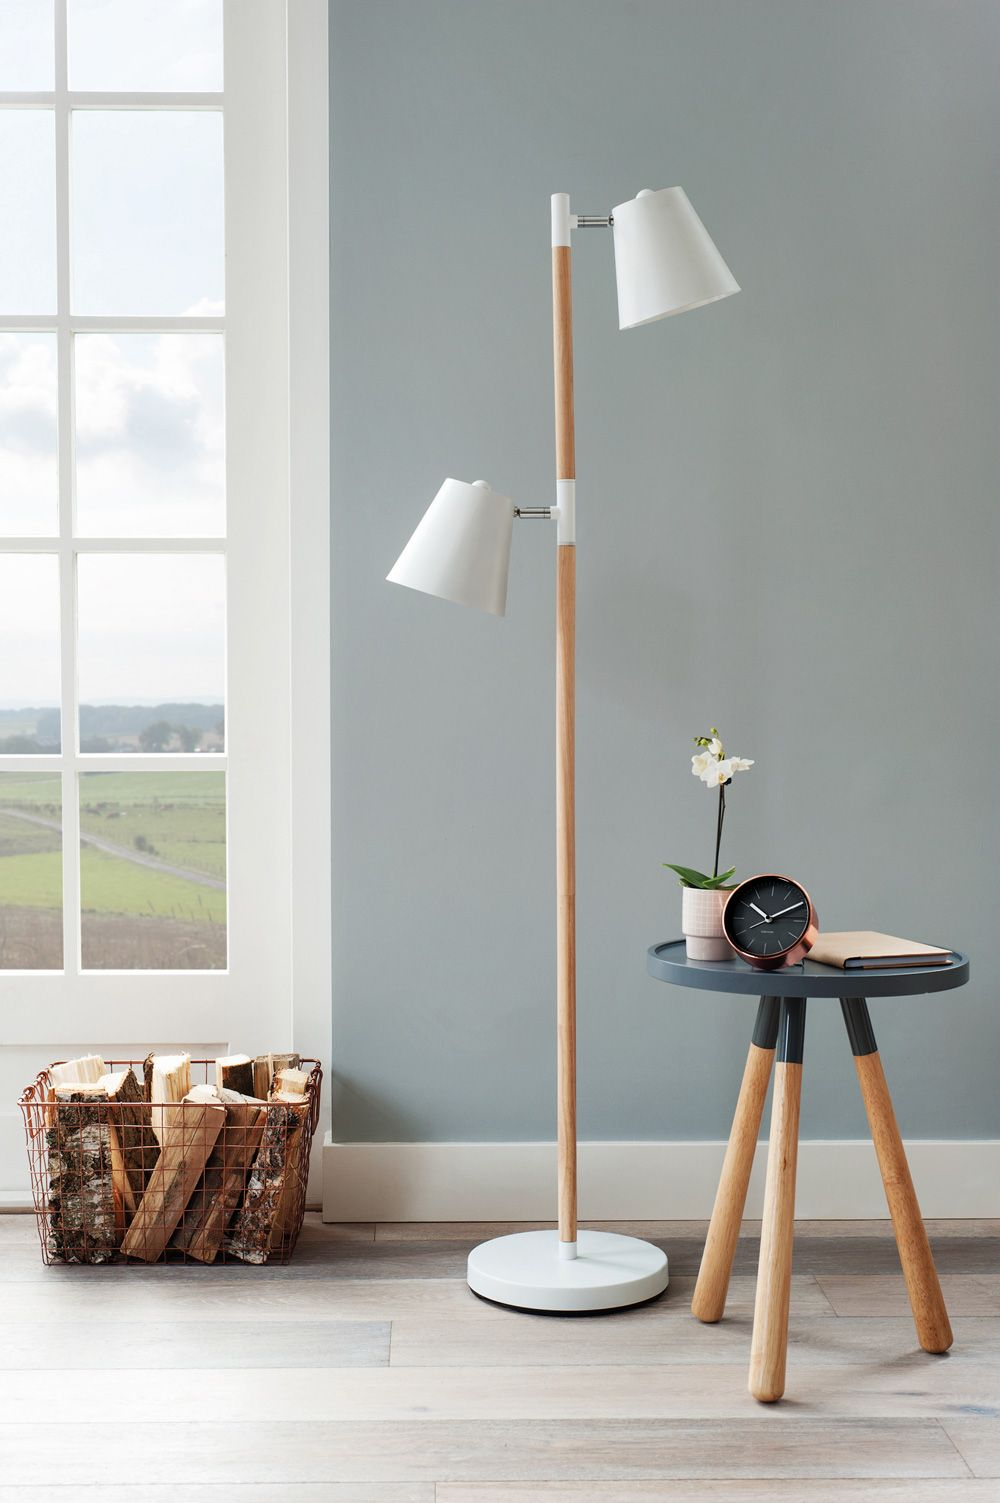 Come And Take A Look In Our Home Leitmotiv Furniture And Lamps